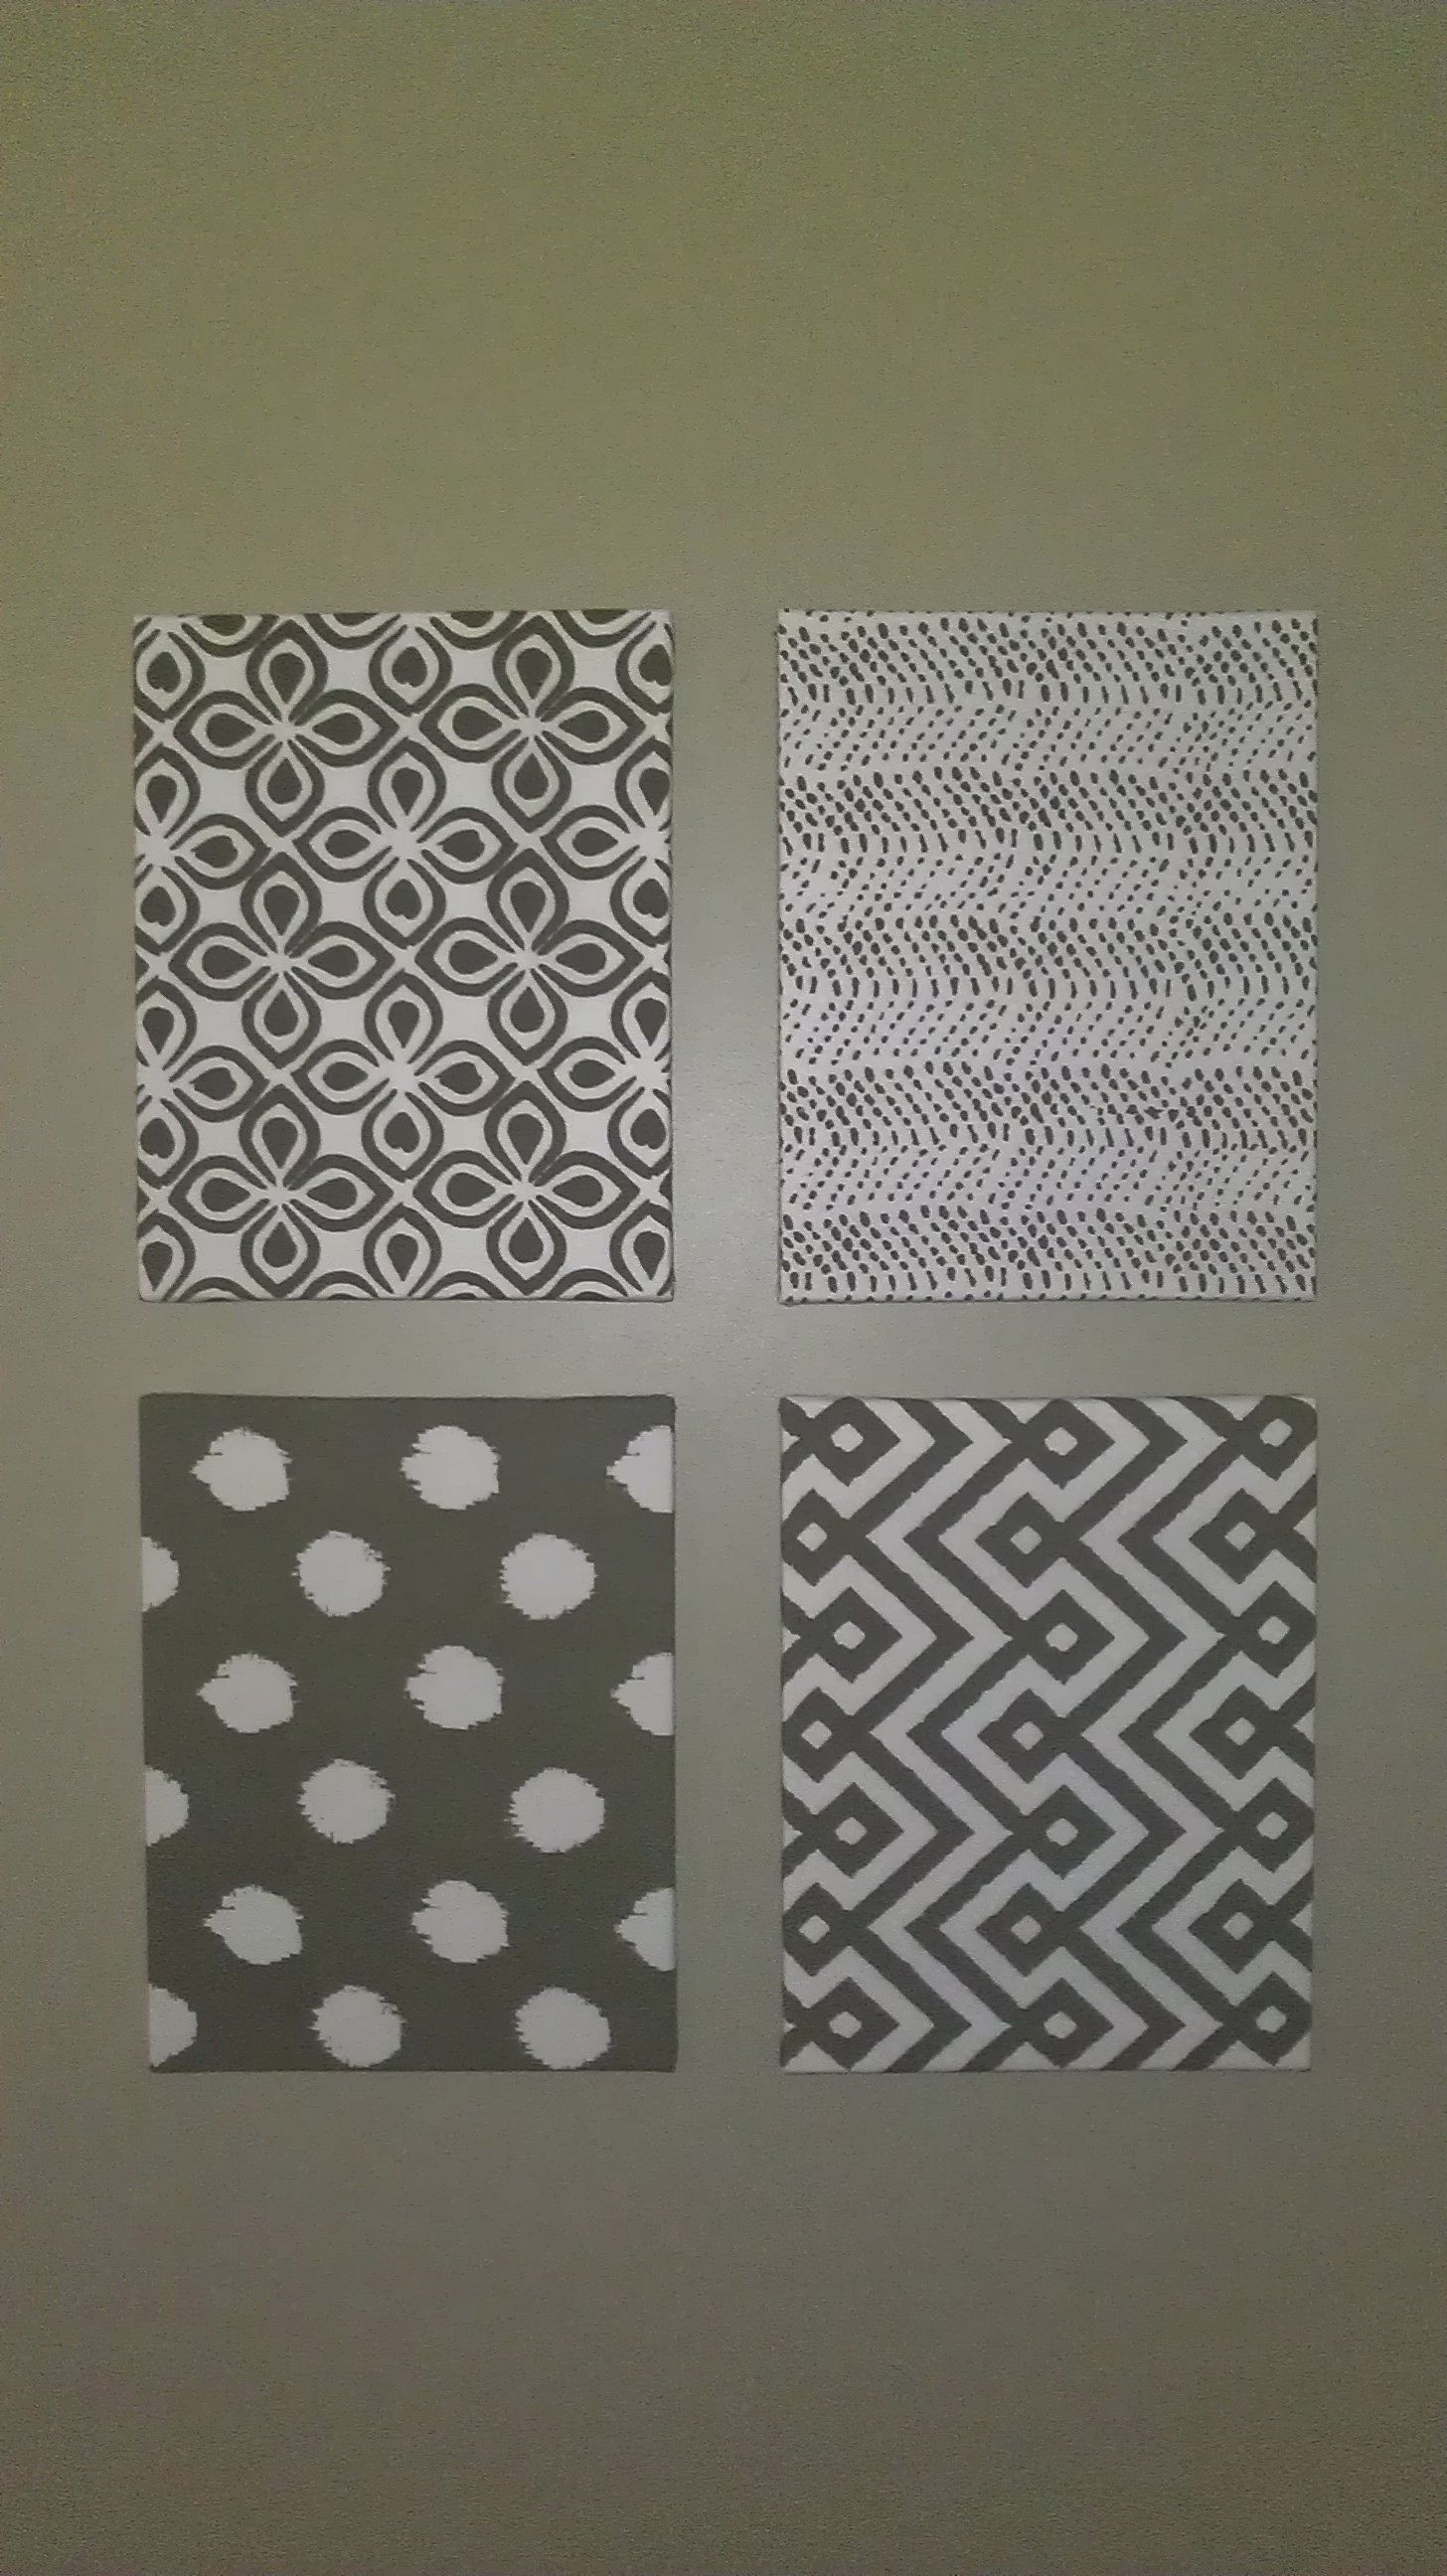 Homemade art using canvases from Hobby Lobby cheap and napkins